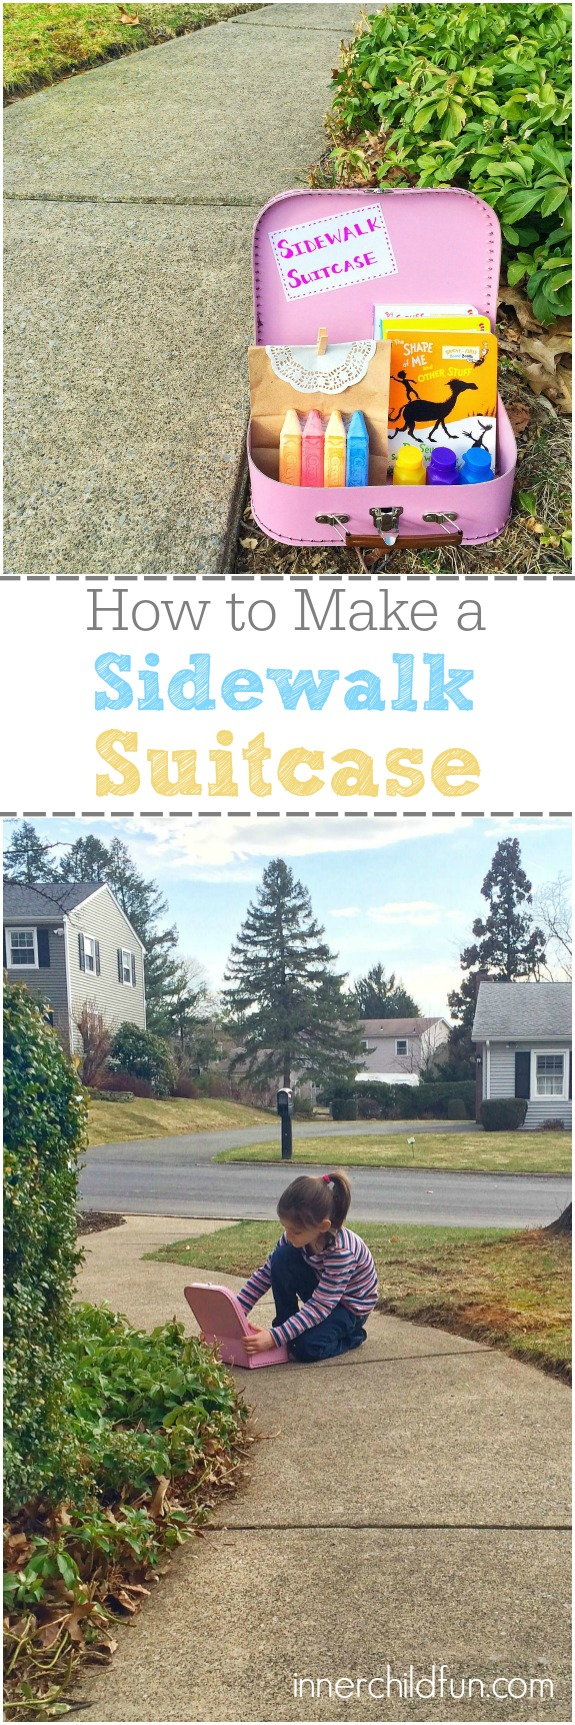 Fun Outdoor Activity Idea -- Sidewalk Suitcase